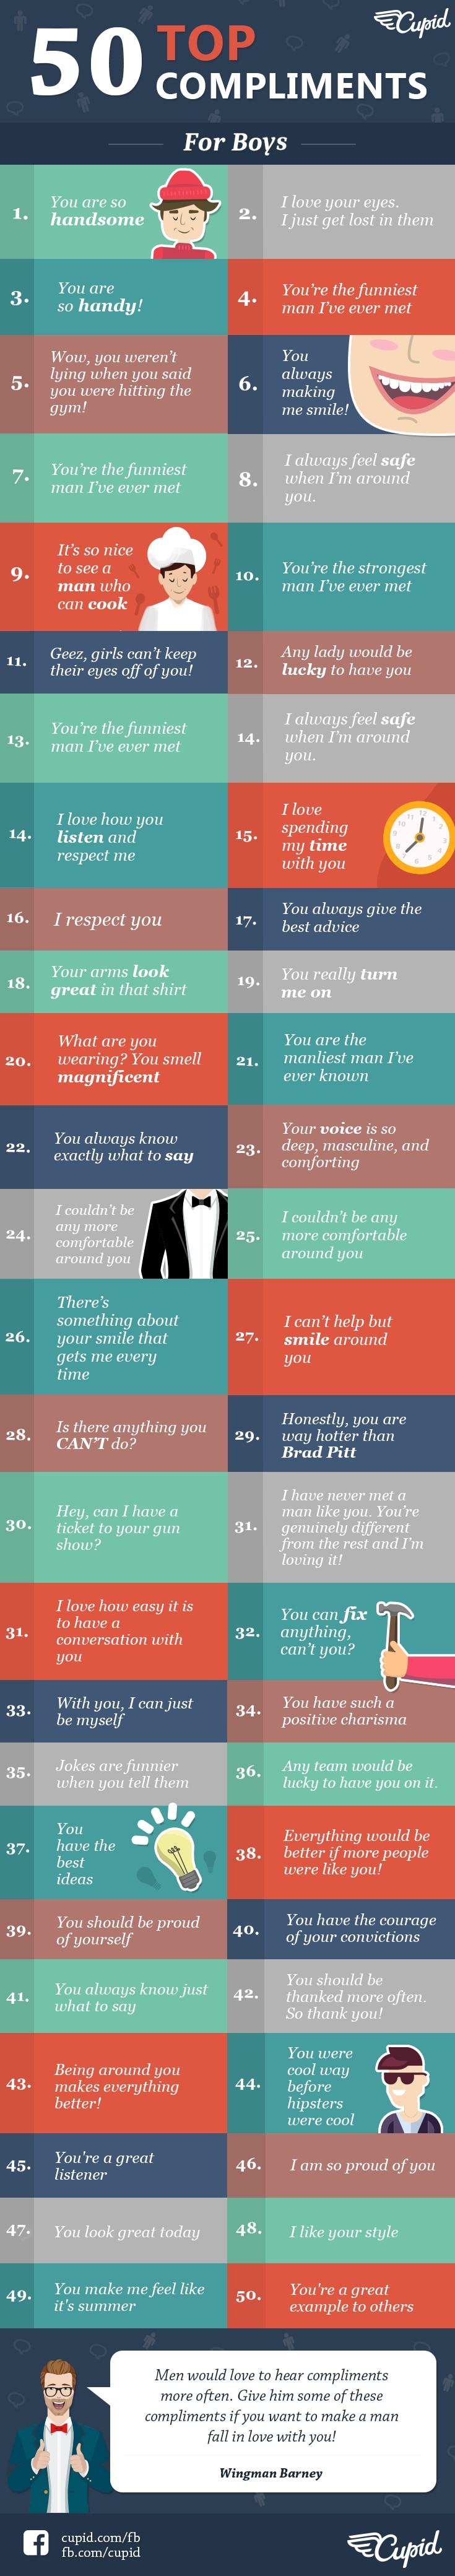 Compliments for Men Infographic